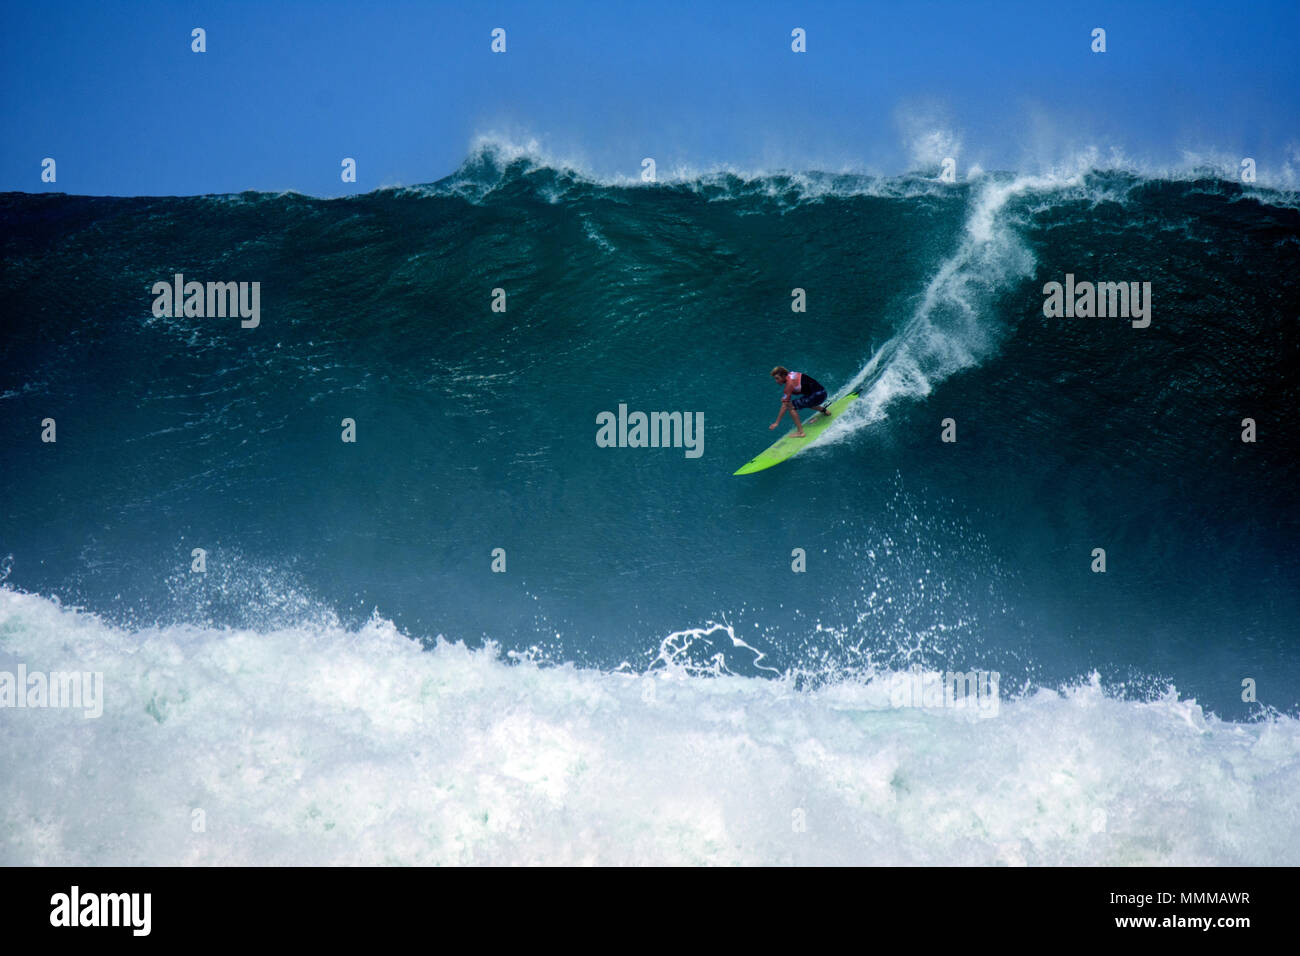 bb5ad4a8e0 Professional surfer John John Florence rides a giant wave during the  Quiksilver in memory of Eddie Aikau 2016